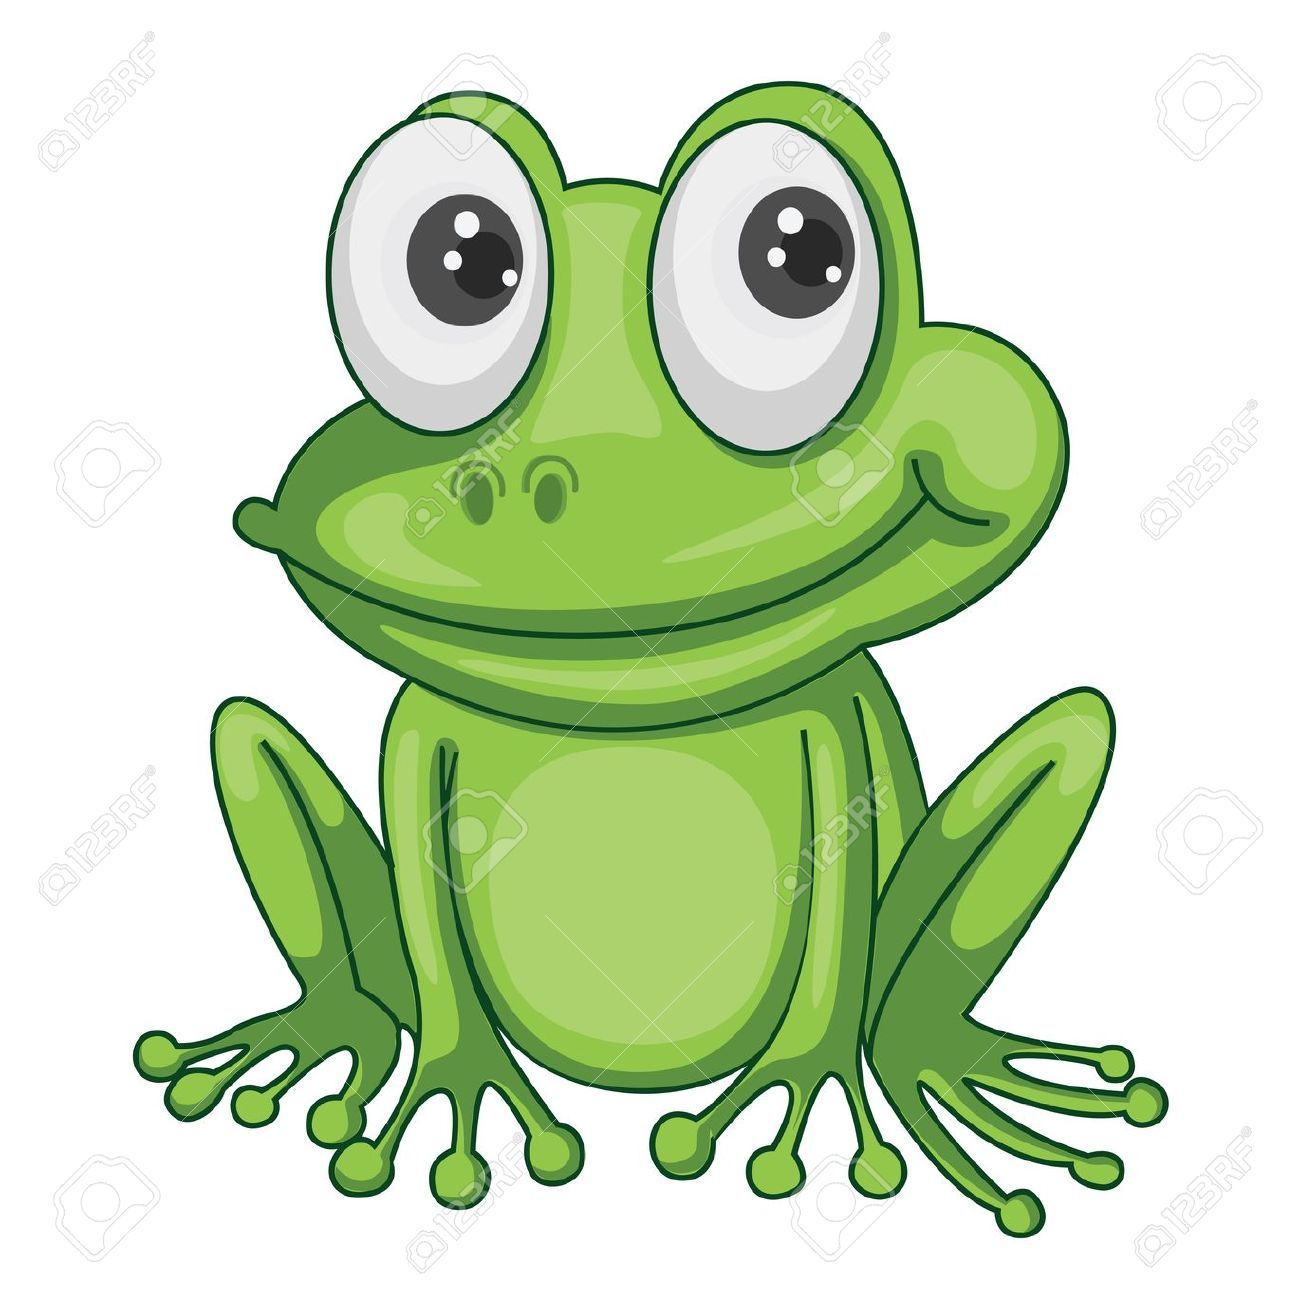 toad cliparts stock vector